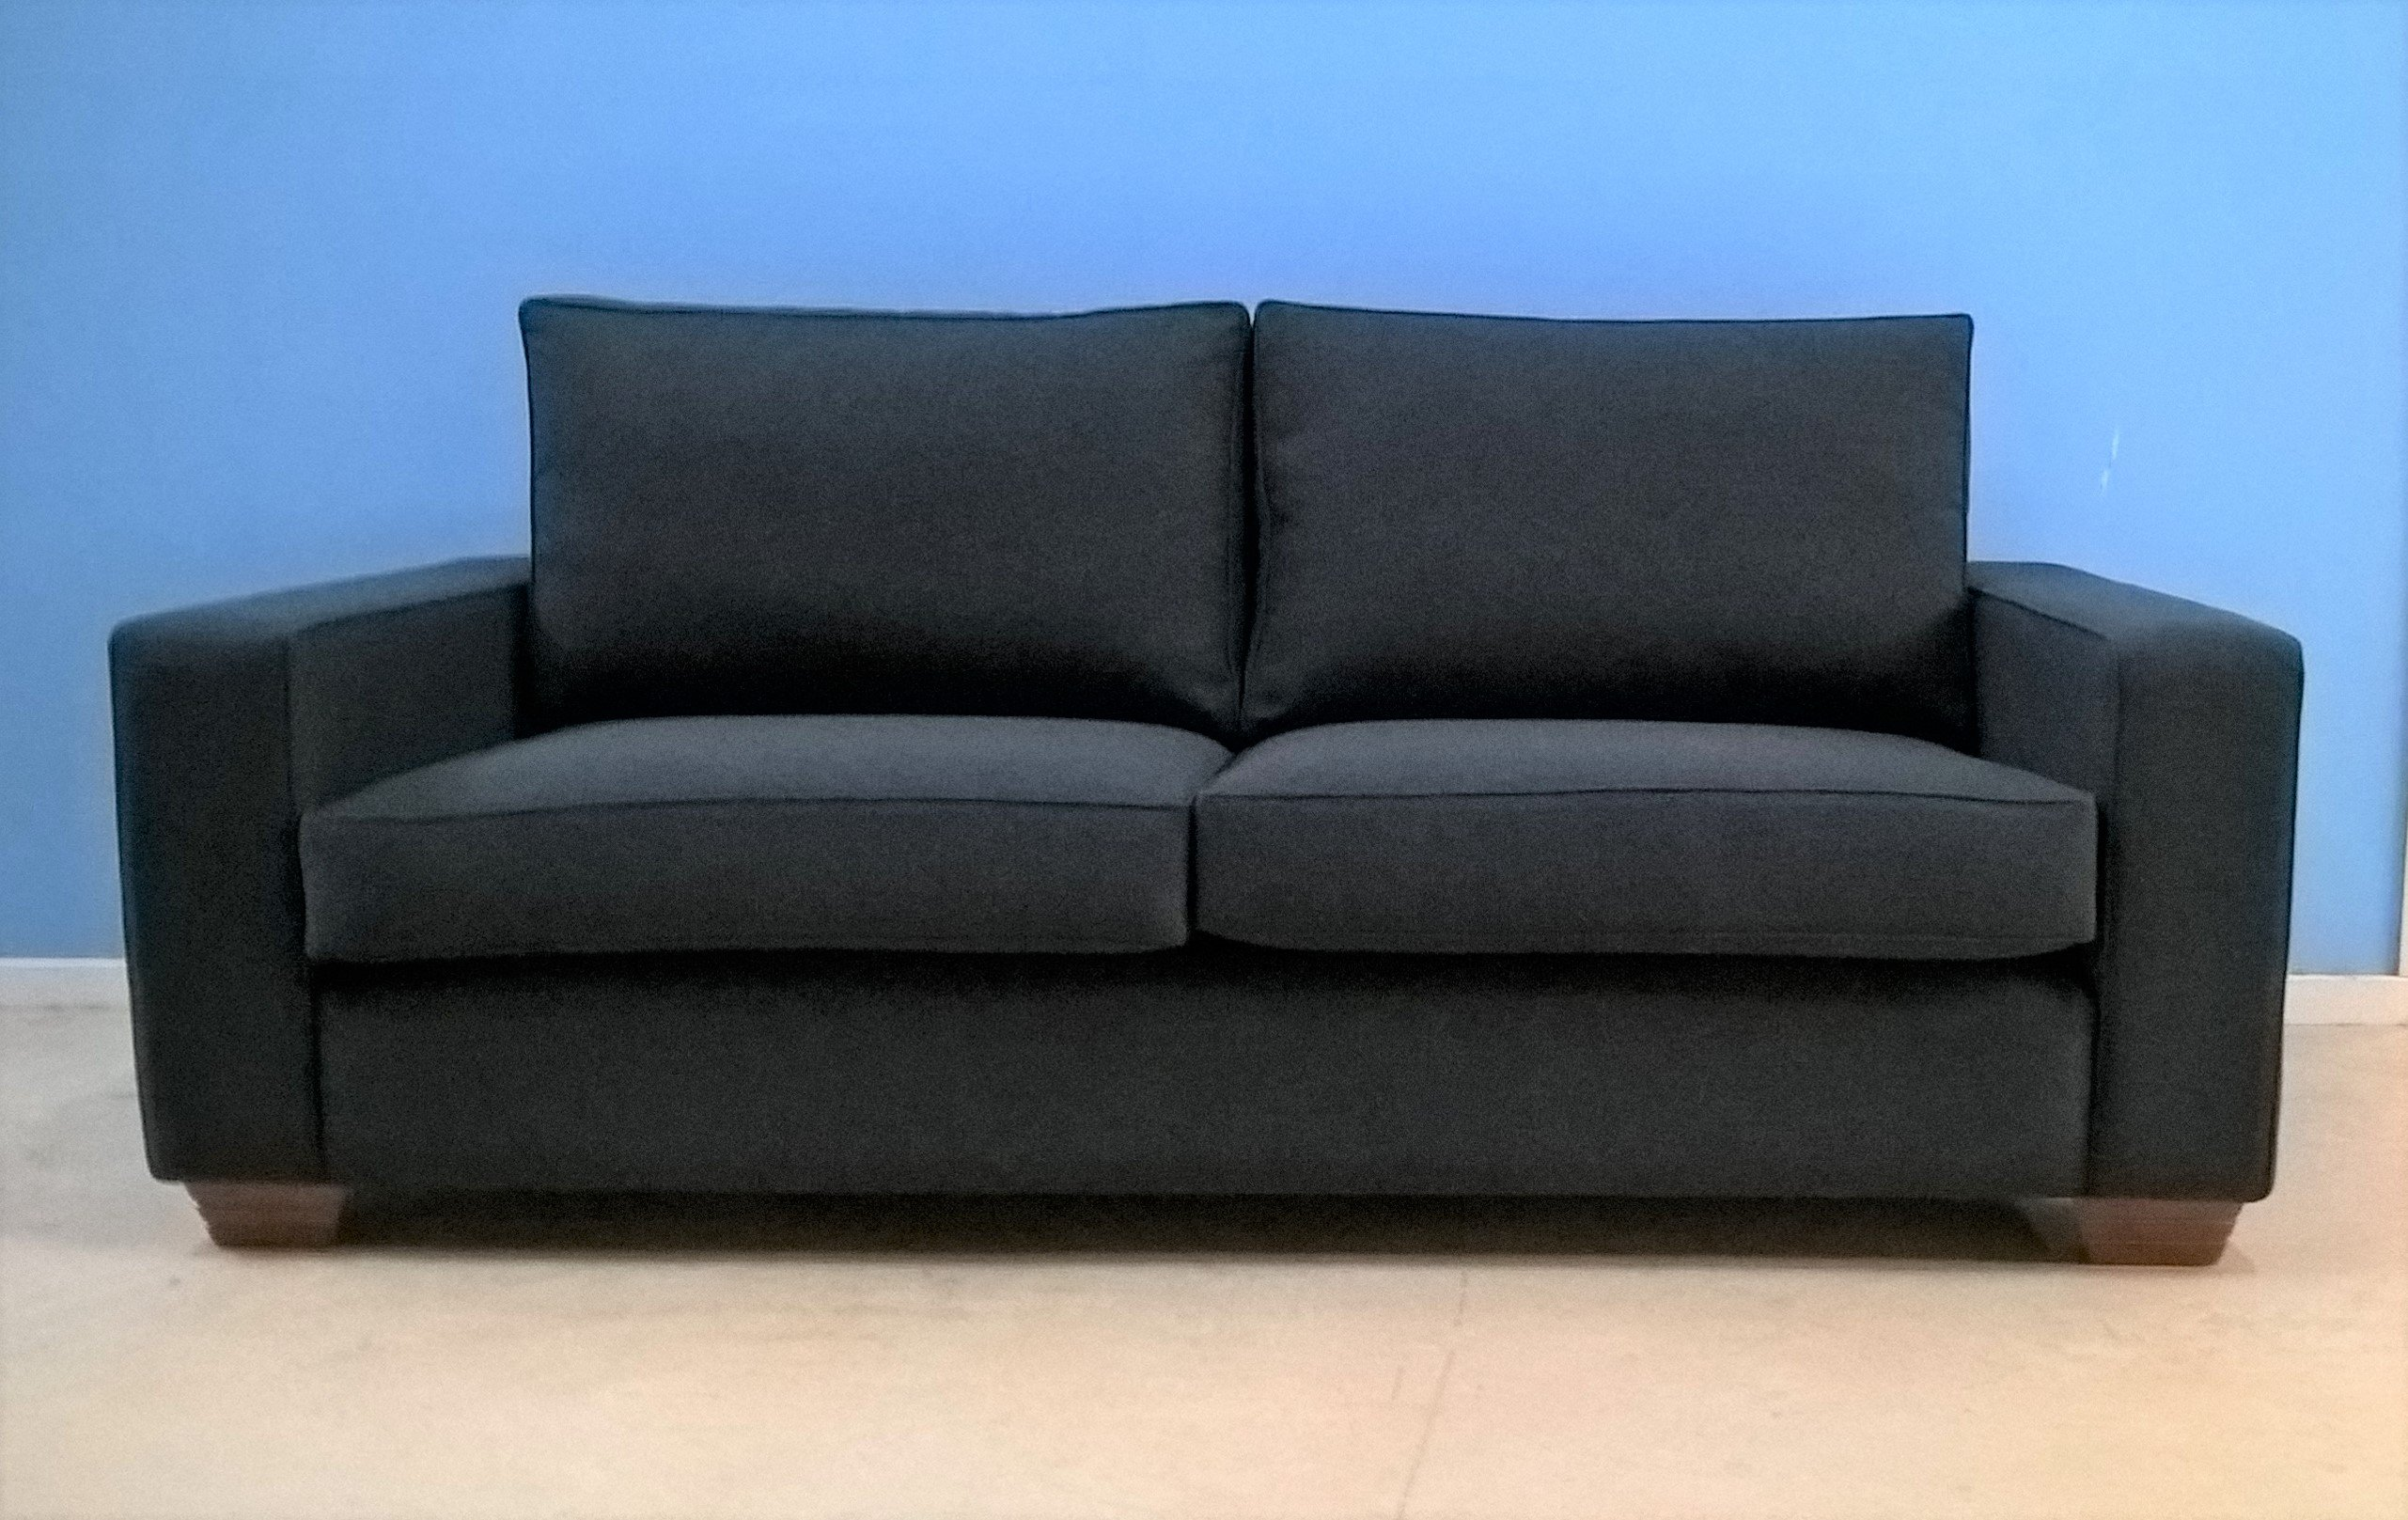 bay sofa custom sofas 4 less reviews the bespoke curved perfect for a window